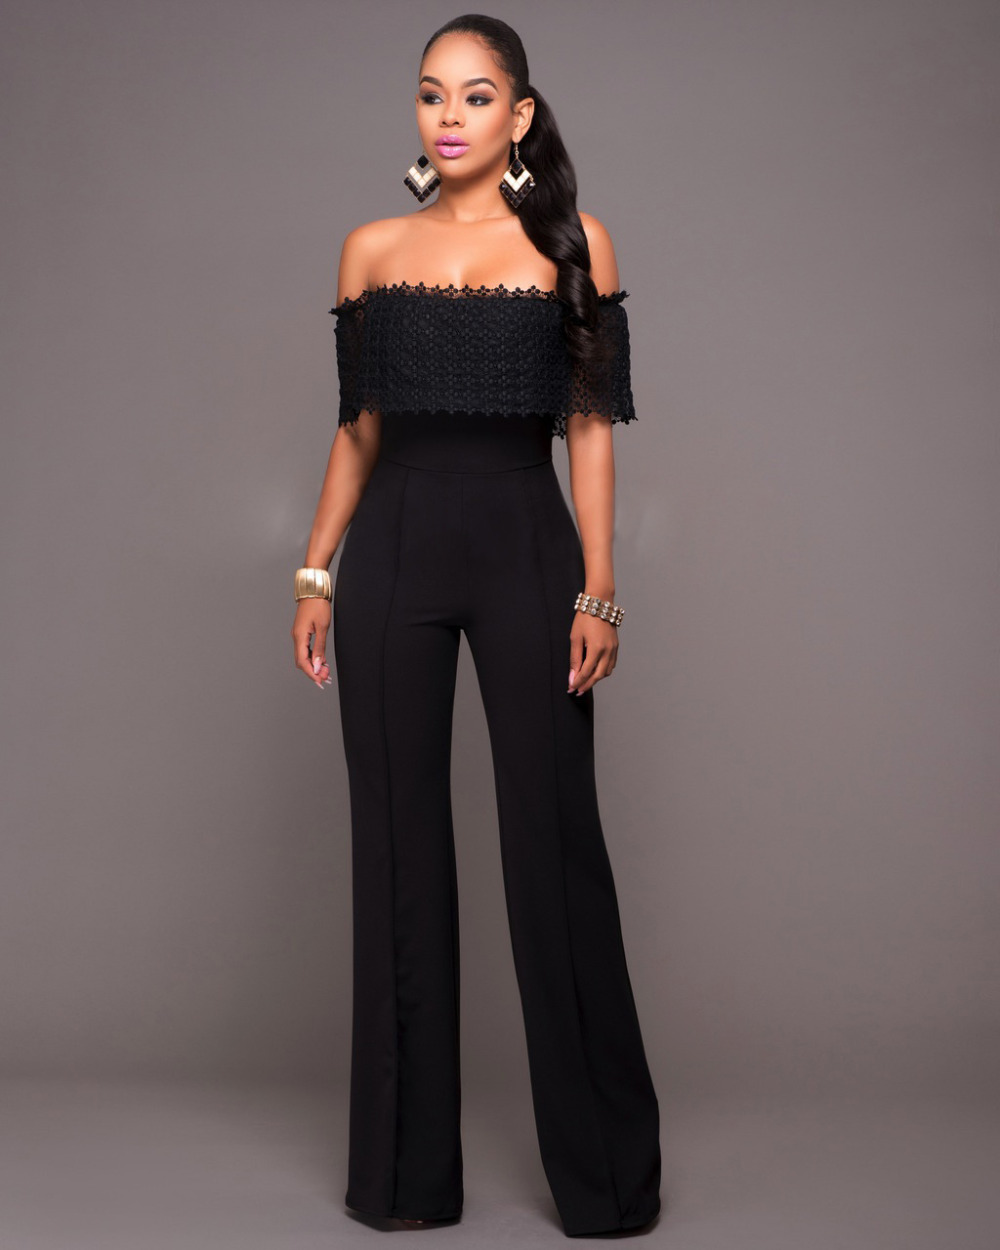 f73b4ef78b32 2016 Rompers Womens Jumpsuit Summer Black Slash Neck Wide Leg Jumpsuit  Ladies Elegant Jumpsuit Plus Size Overalls For Women-in Jumpsuits from  Women s ...